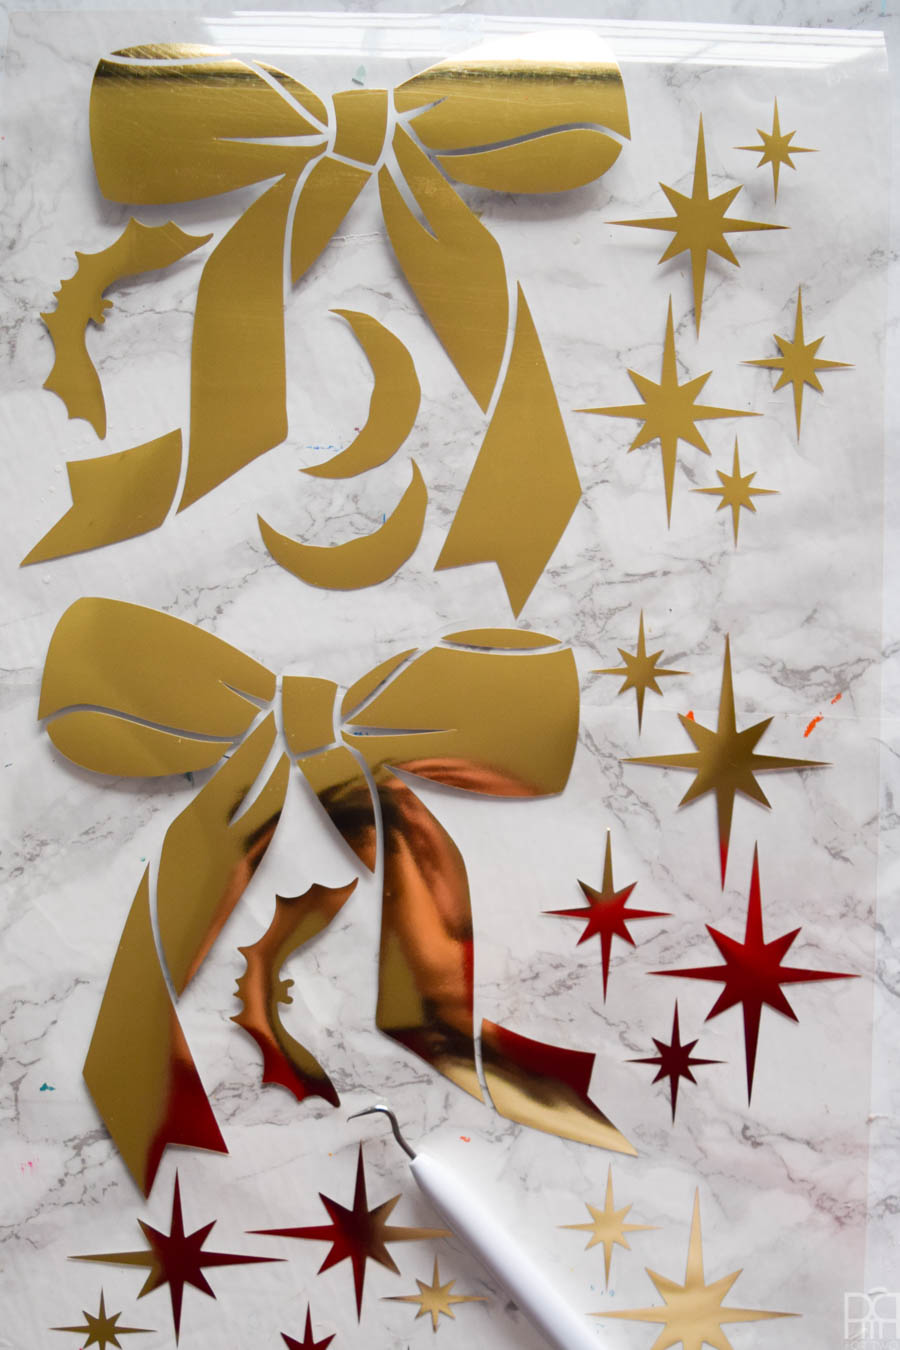 bows and atomic starbursts cut out of gold HTV against a marble background